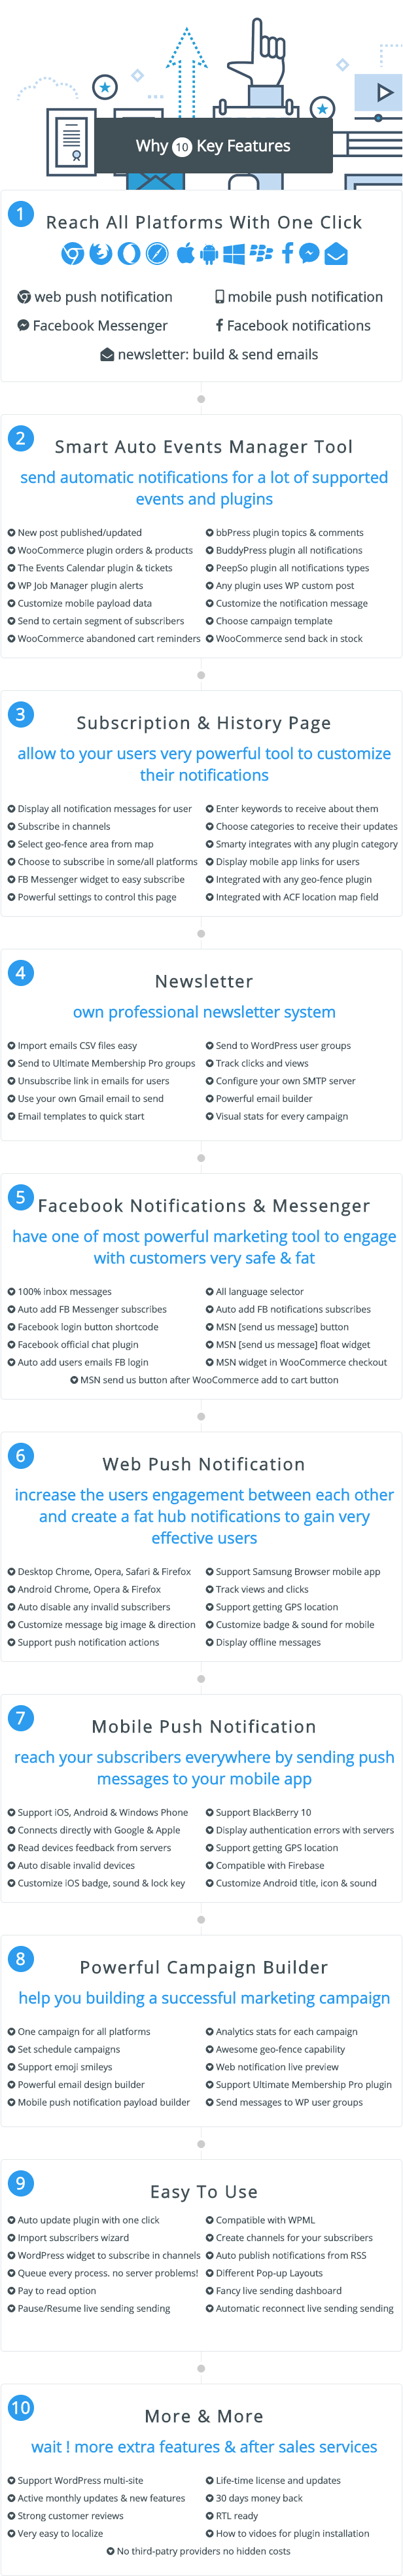 Smart Notification Wordpress Plugin. Web & Mobile Push, FB Messenger, FB Notifications & Newsletter. - 4